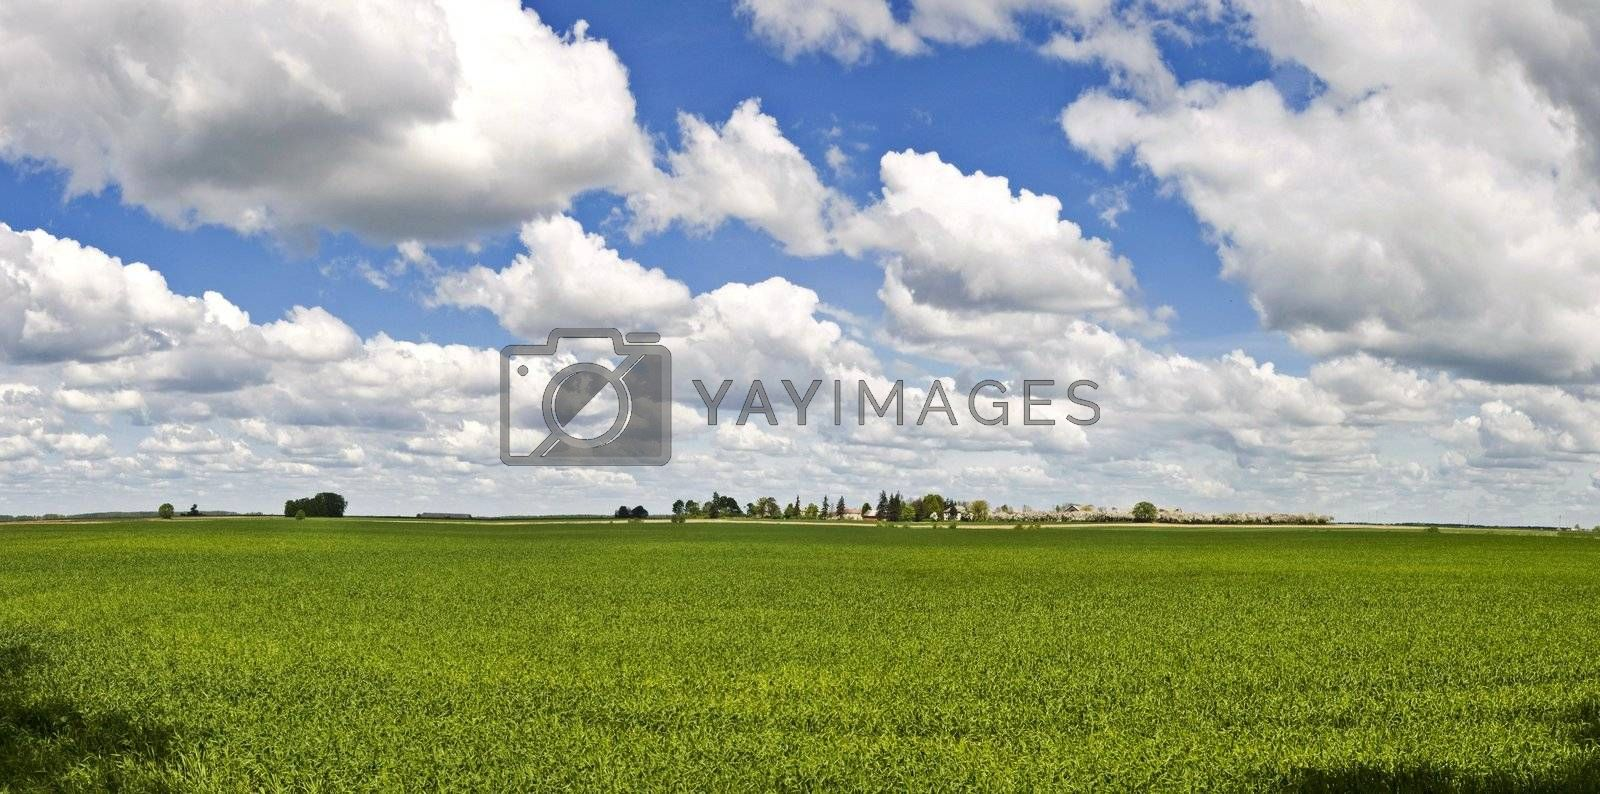 Landscape BIG panorama - field, trees and blue cloudy sky (ideal for background or wallpaper)